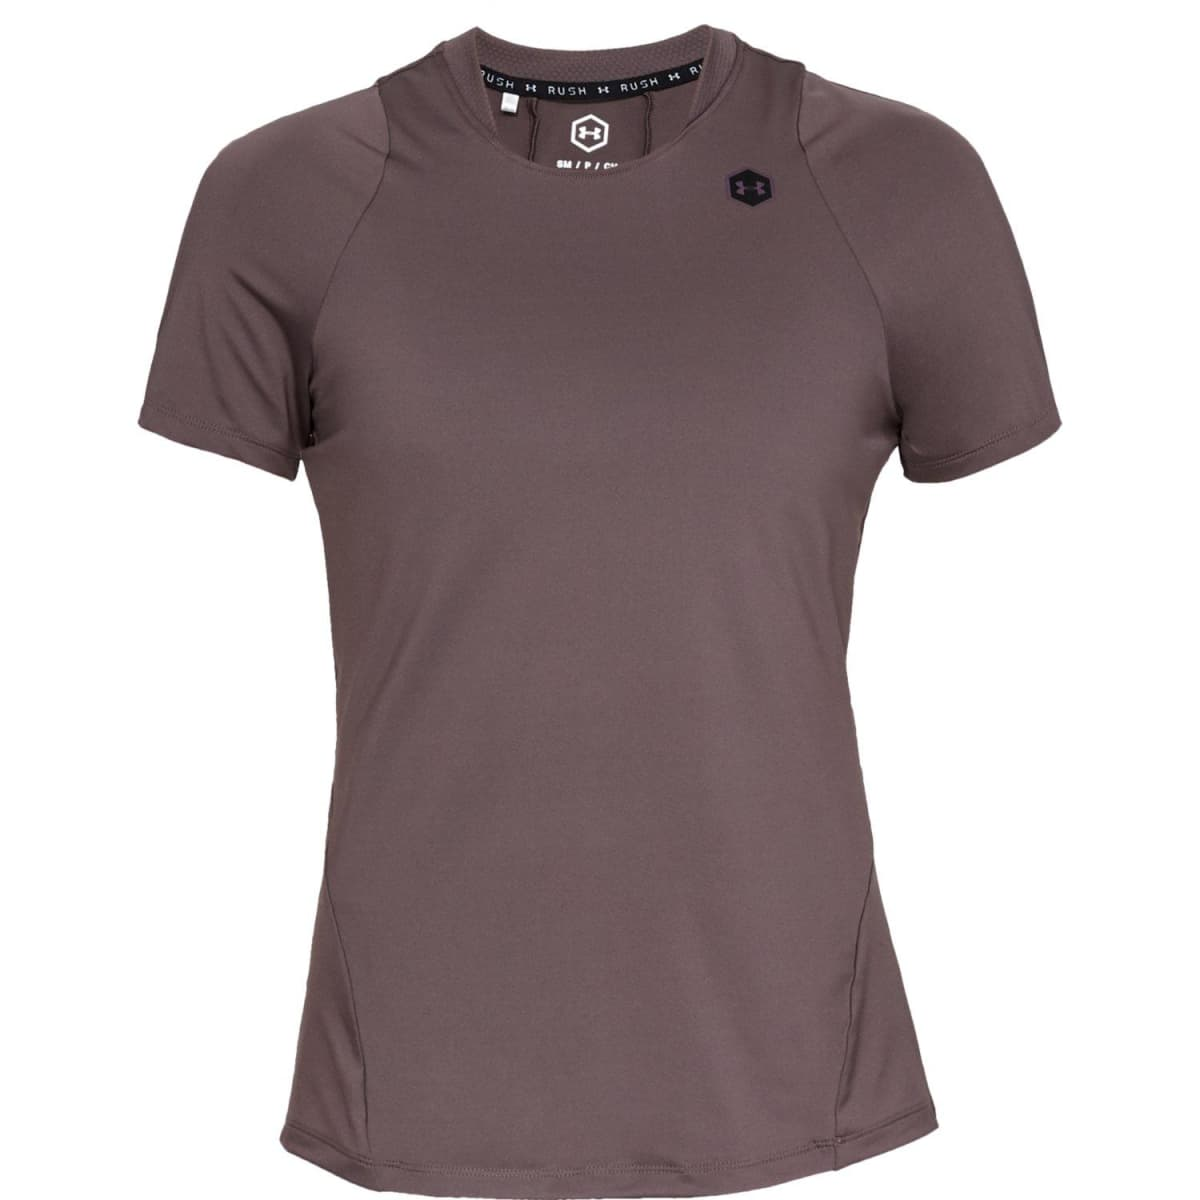 e8a2dcb0fbd111 Under Armour Products | Sportsmans Warehouse